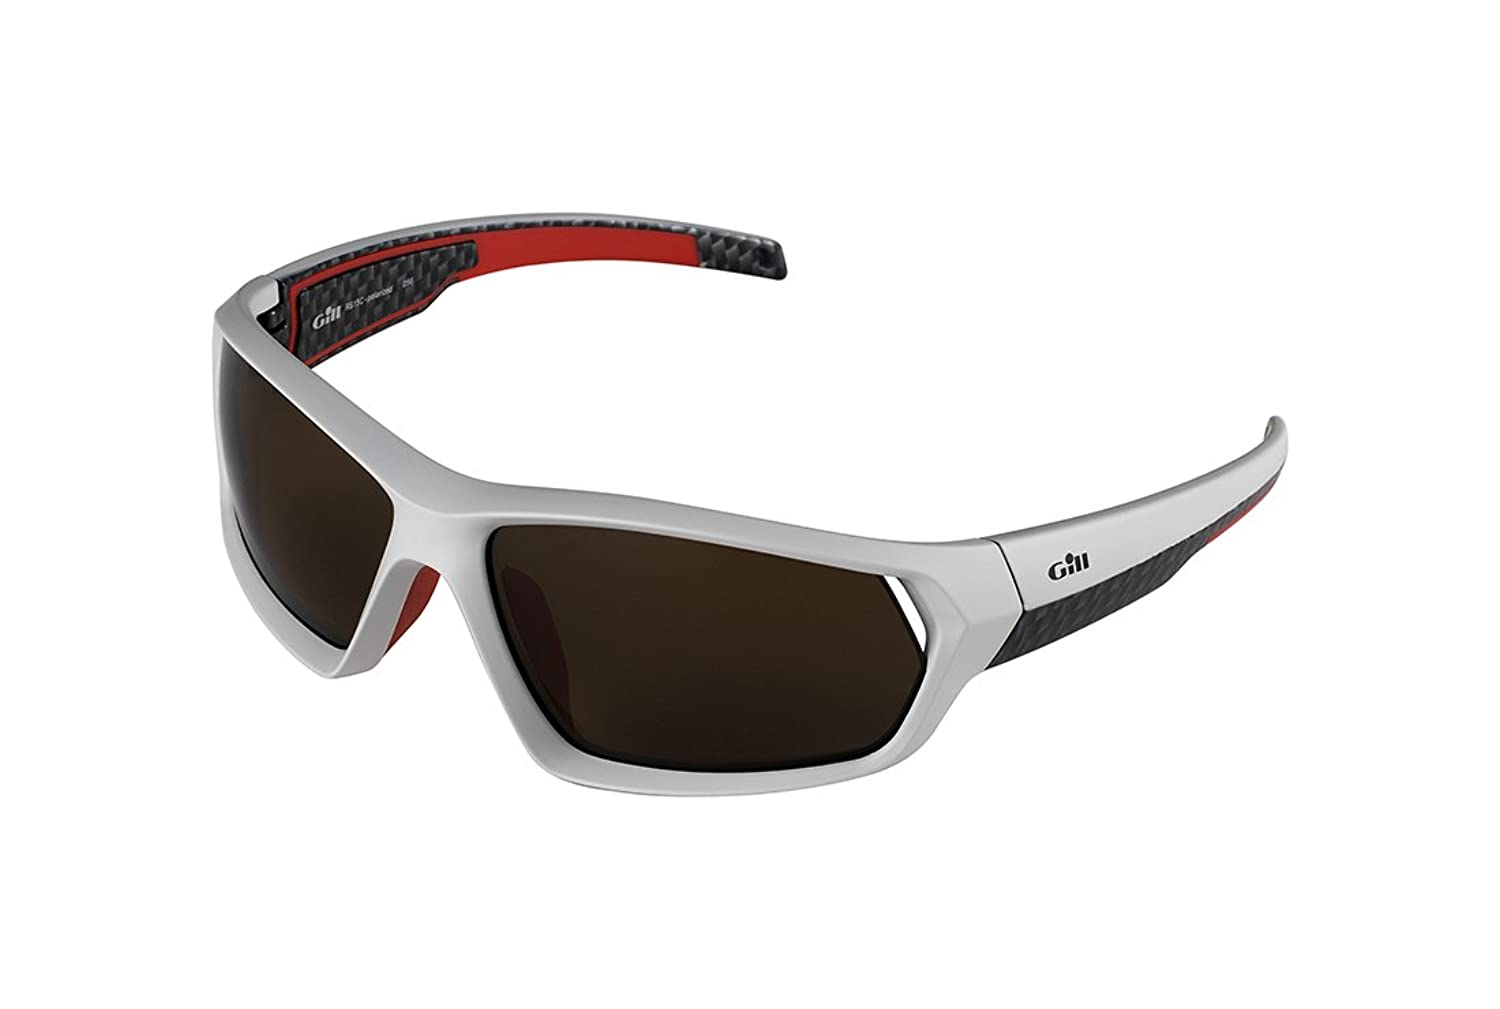 2017 Gill Race Sunglasses Graphite RS15